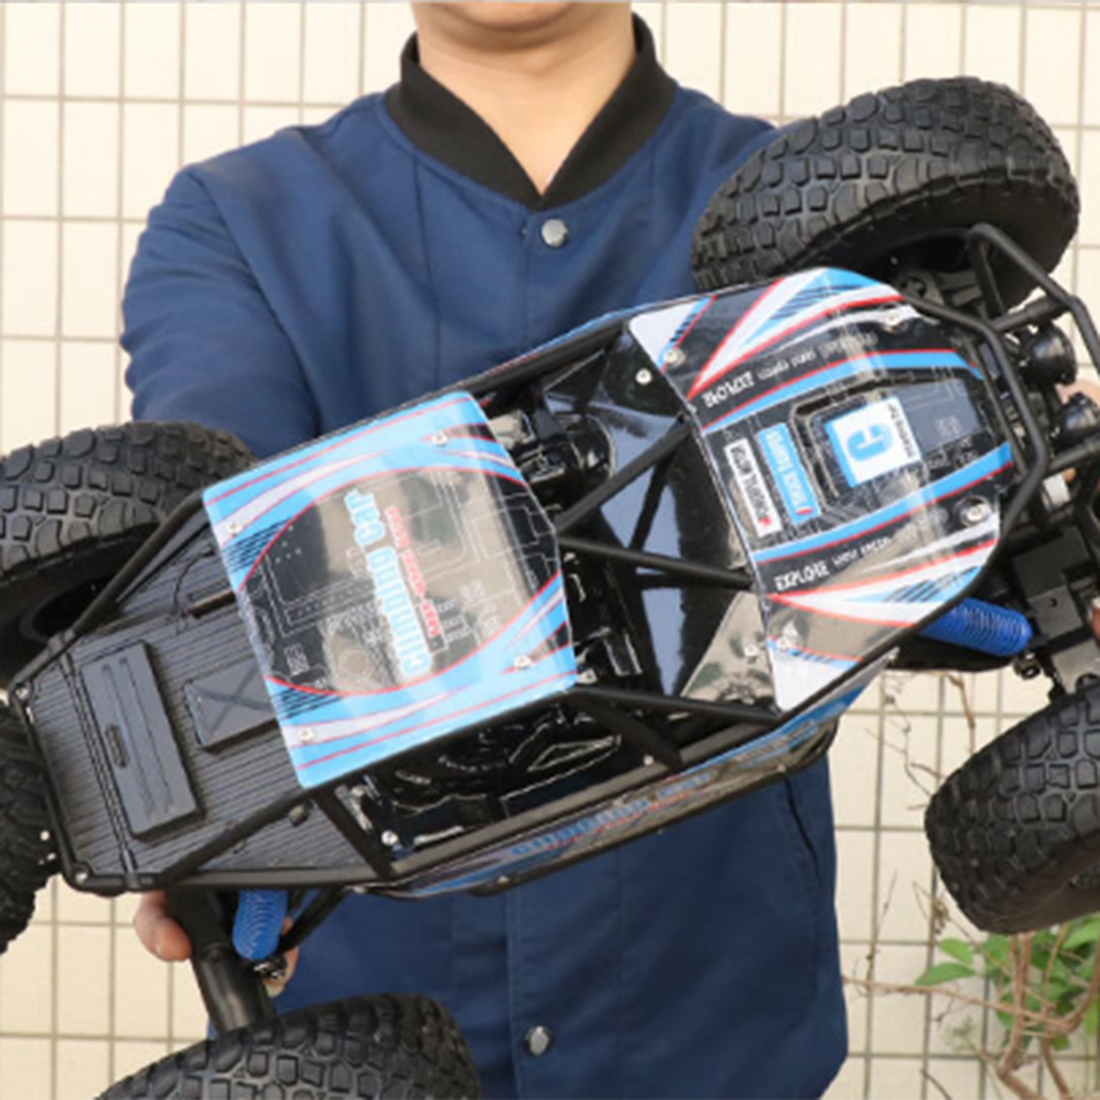 48cm 1:10 4WD 2.4G RC Monster Truck High Speed Racing Car Off Road Vehicle For Child School Play Education Birthday Gift Blue - 3